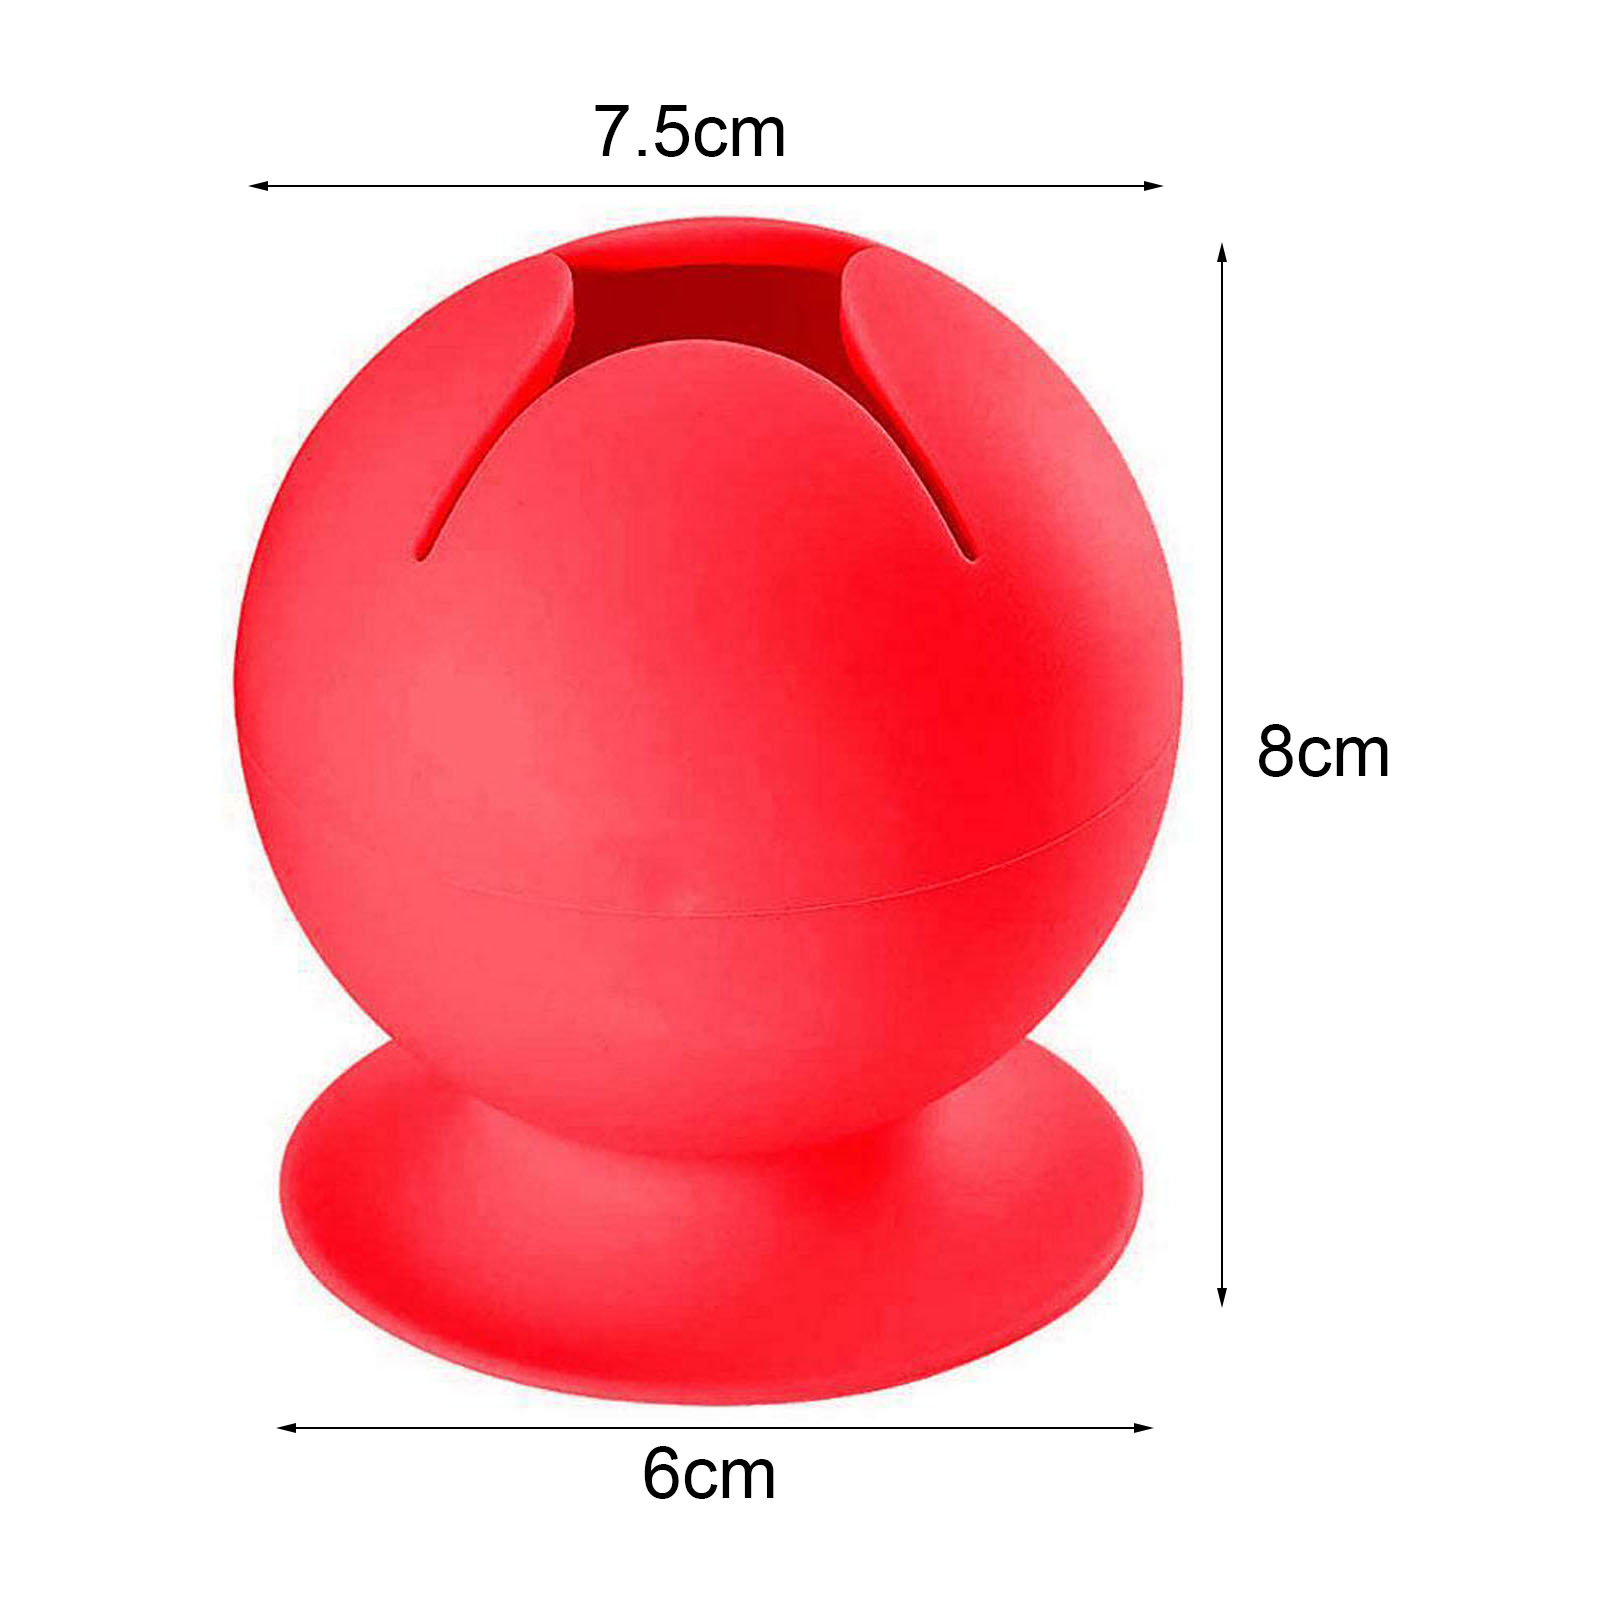 Vinyl Weeding Waste Collector Craft Weeding Tool Holder kit Craftsman for Vinyl Weeder Silicone Suction Cup for Vinyl Treatment